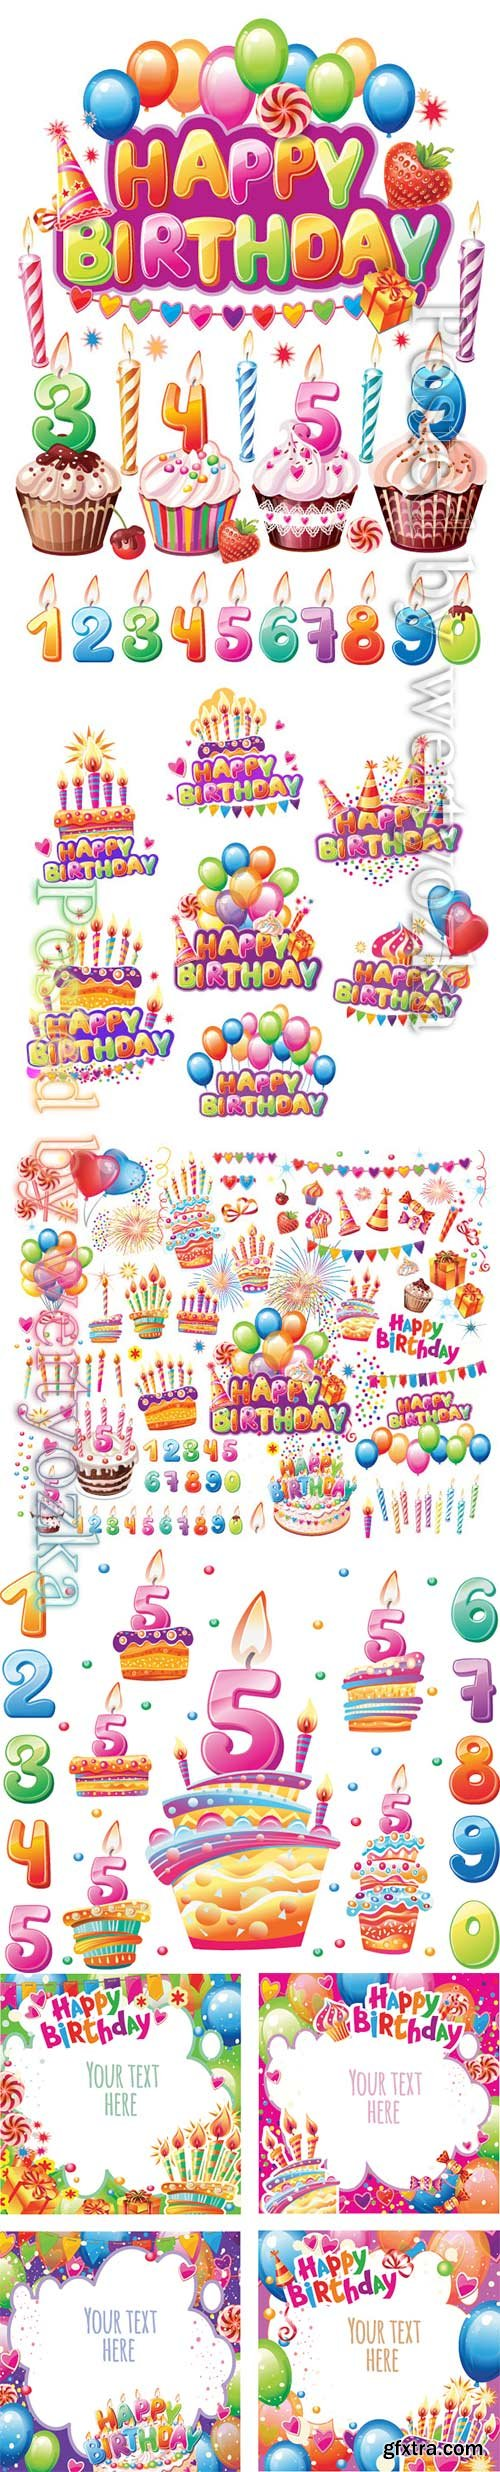 Birthday party set vector elements